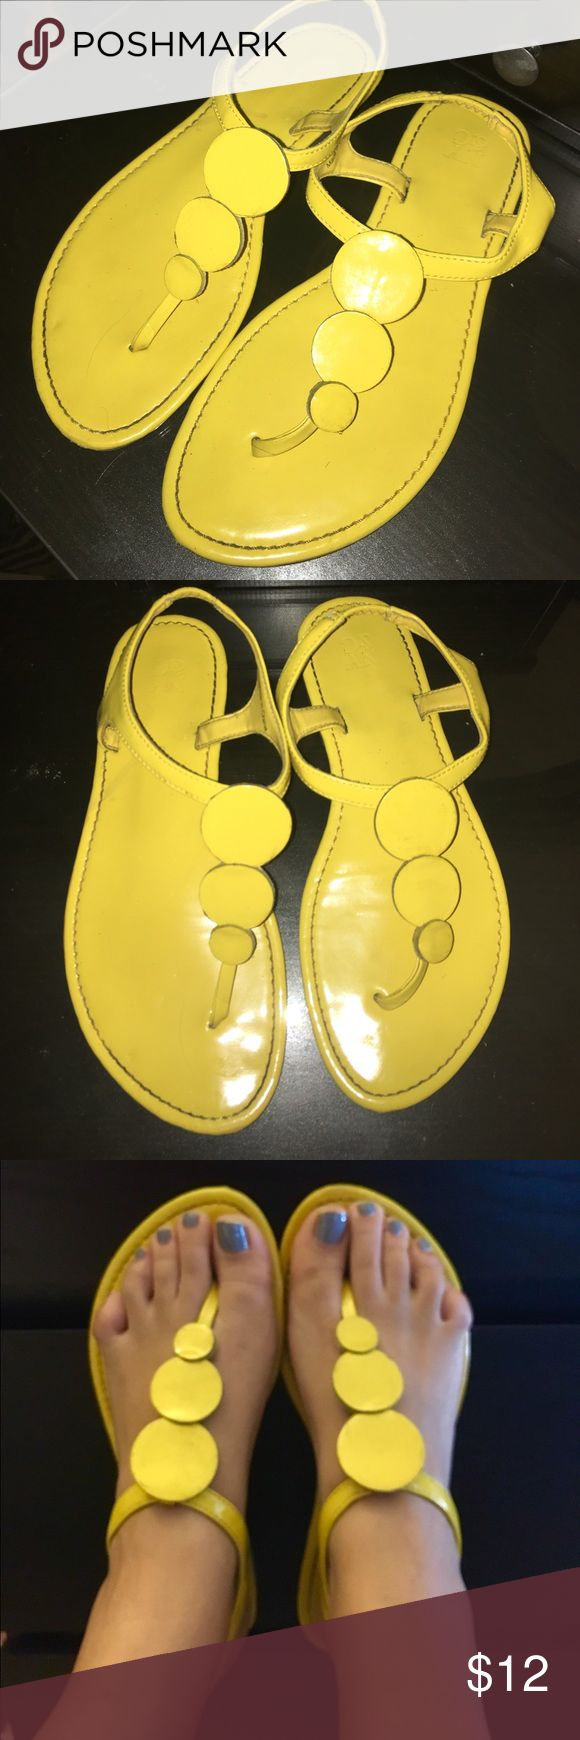 Comfortable yellow sandals Comfortable and bright yellow sandals. Perfect for spring/summer. Will compliment a sundress, jeans or any look! Only worn a few times. New York & Company Shoes Sandals